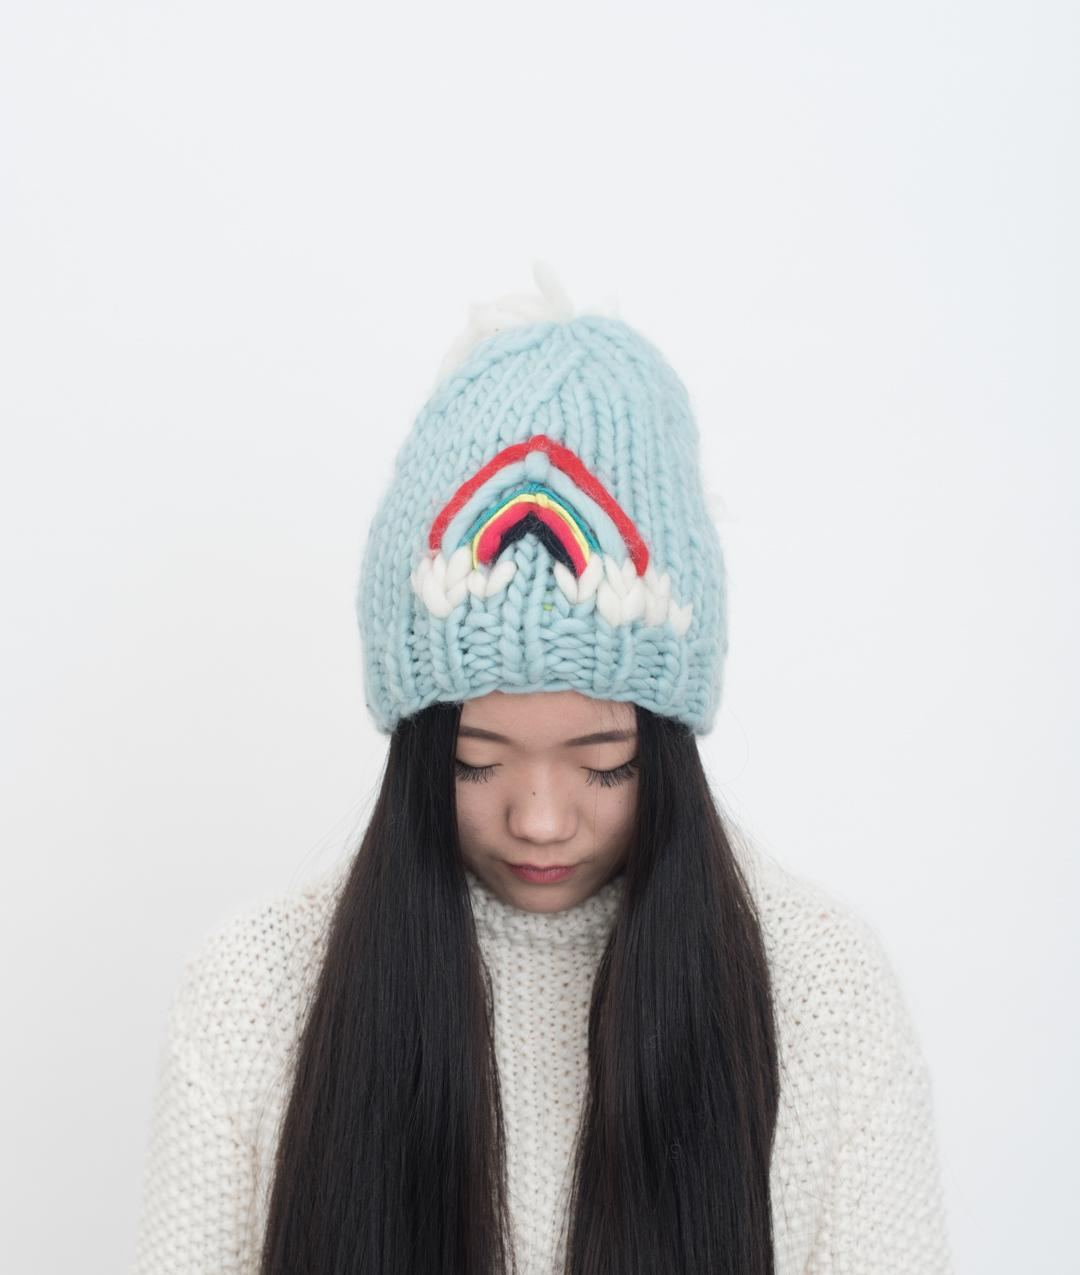 Hats and Beanies - Wool - Unicorn Beanie - 1